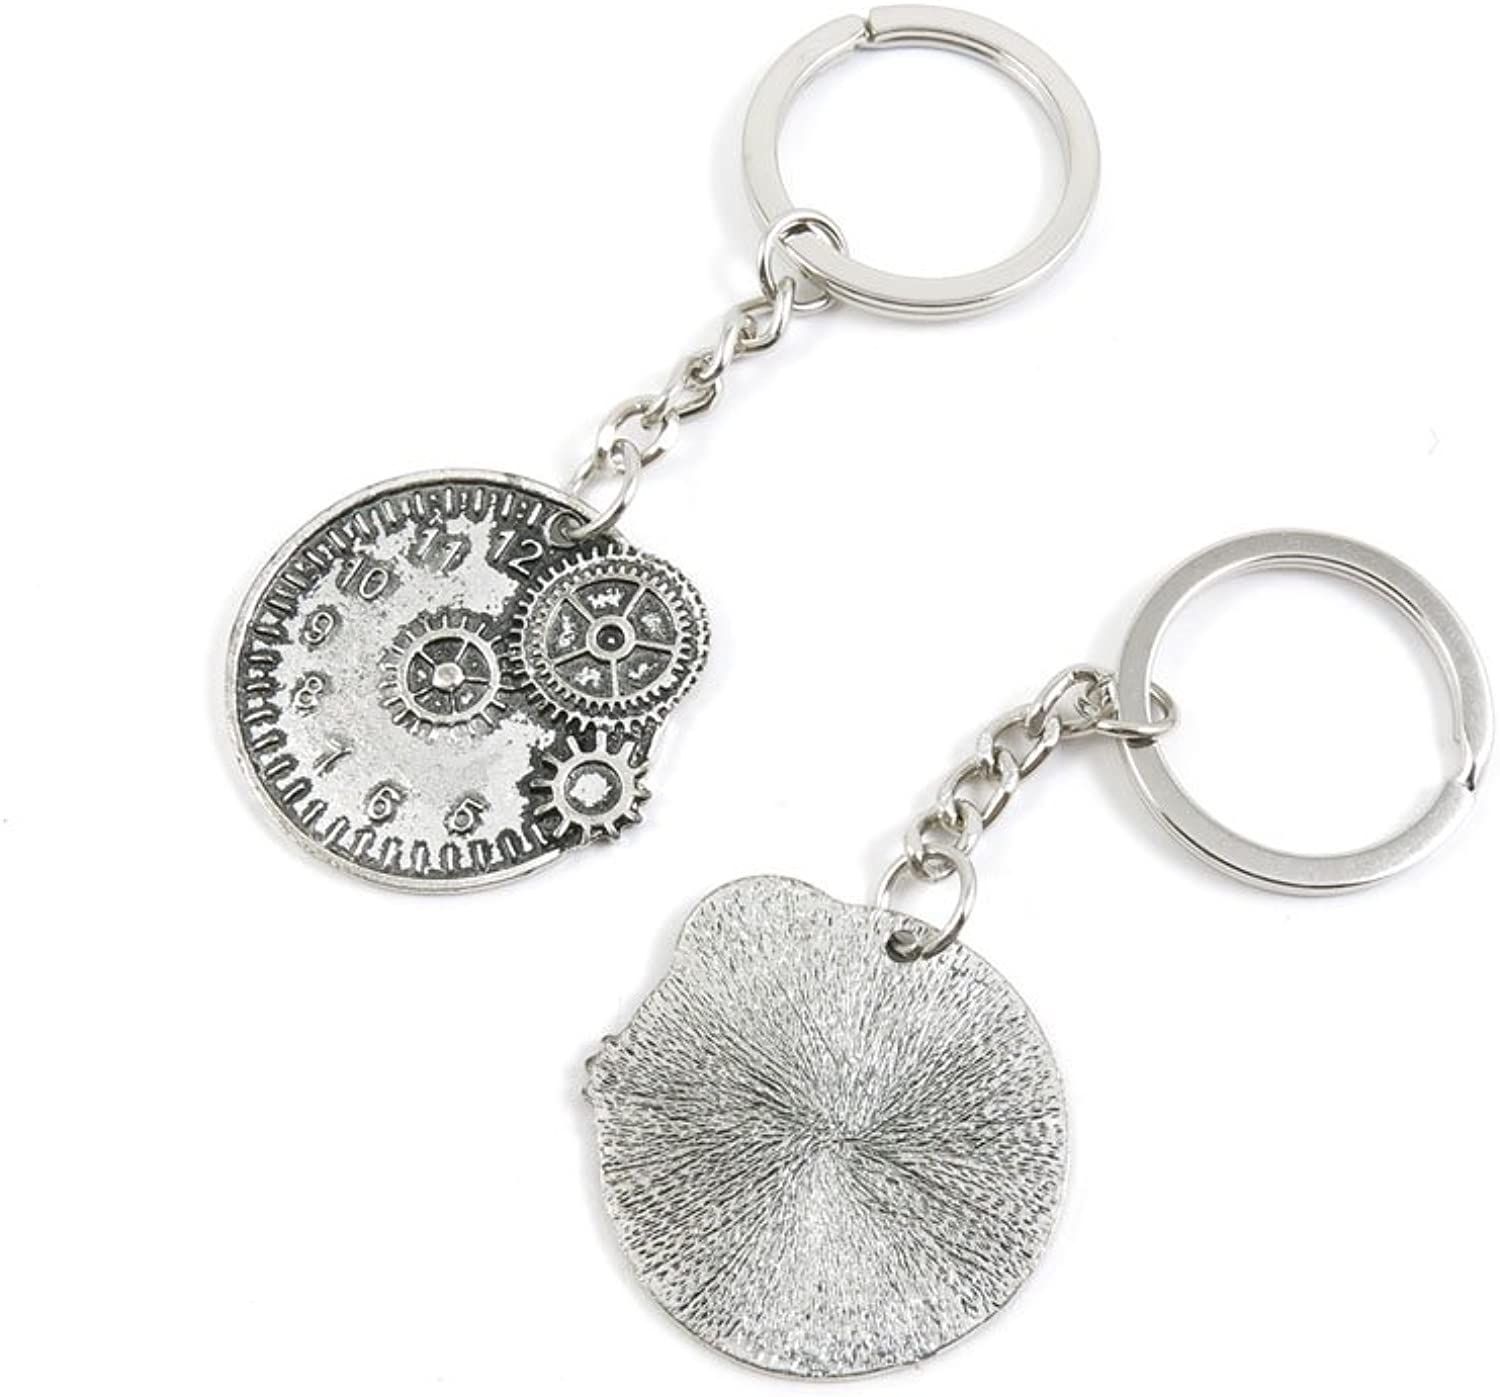 100 Pieces Keychain Keyring Door Car Key Chain Ring Tag Charms Bulk Supply Jewelry Making Clasp Findings J8HD6Y Cog Steampunk Gear Movement